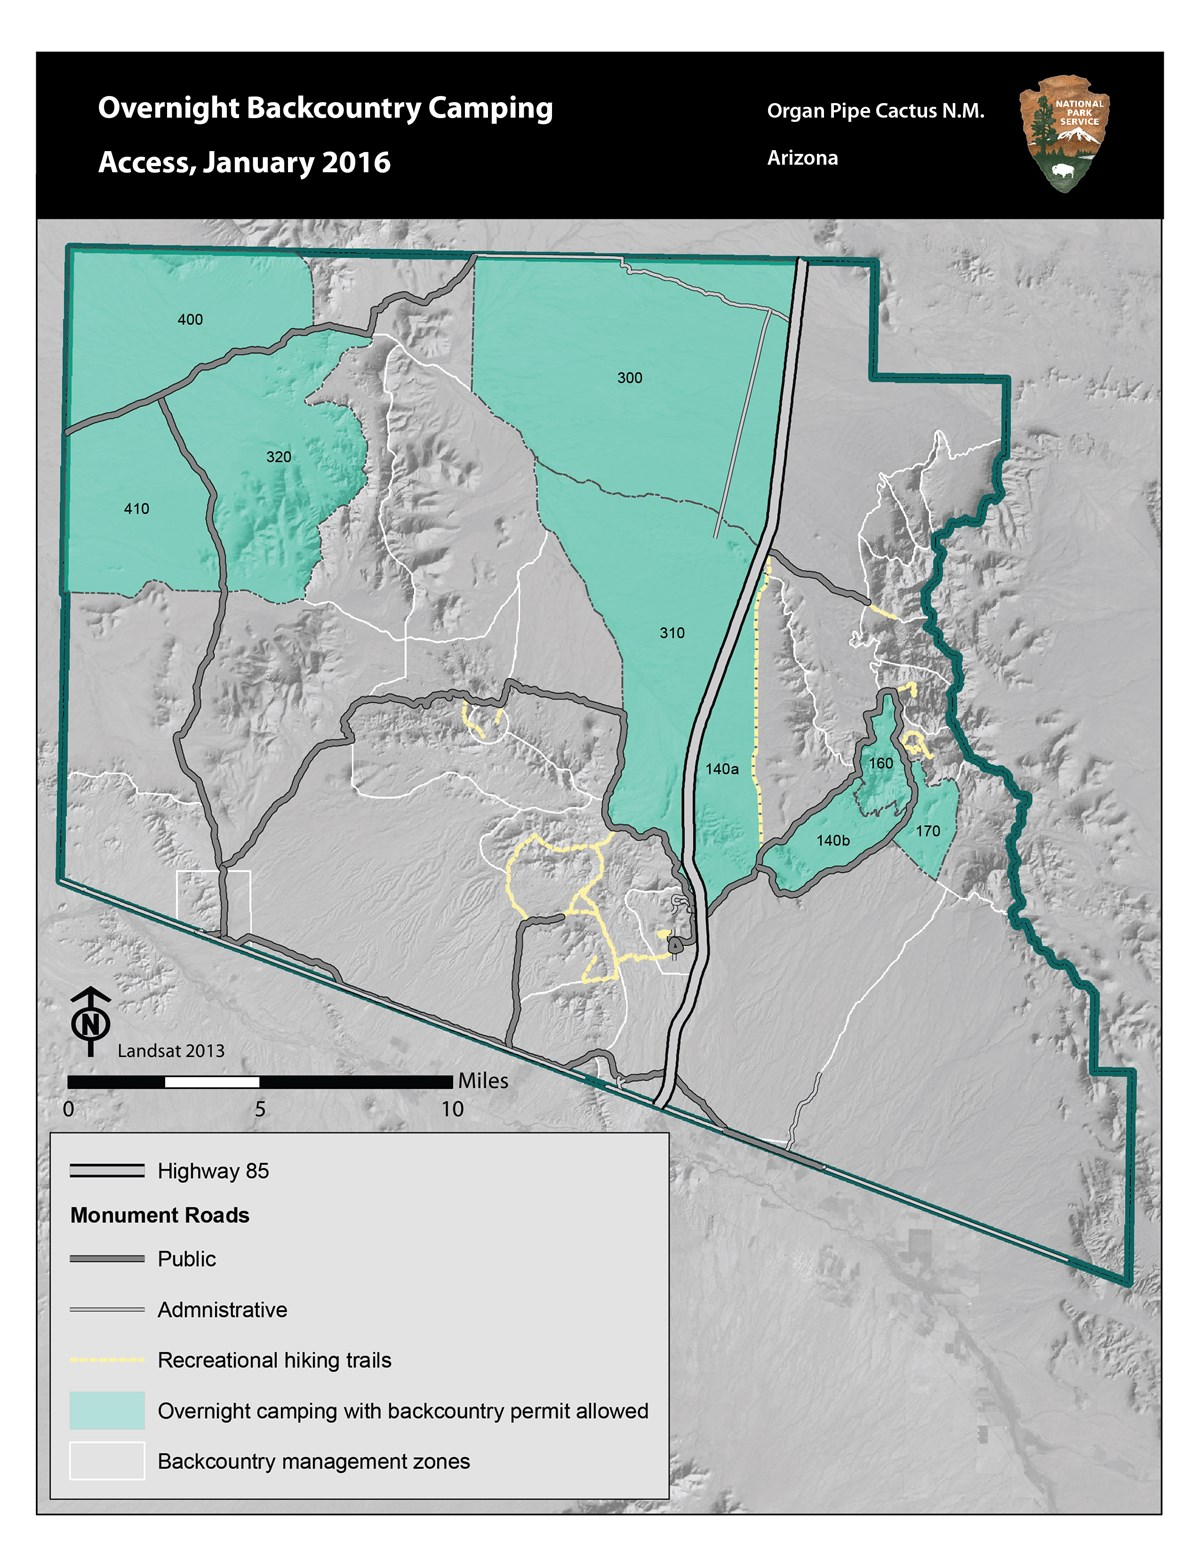 map of organ pipe showing accessible backcountry camping zones